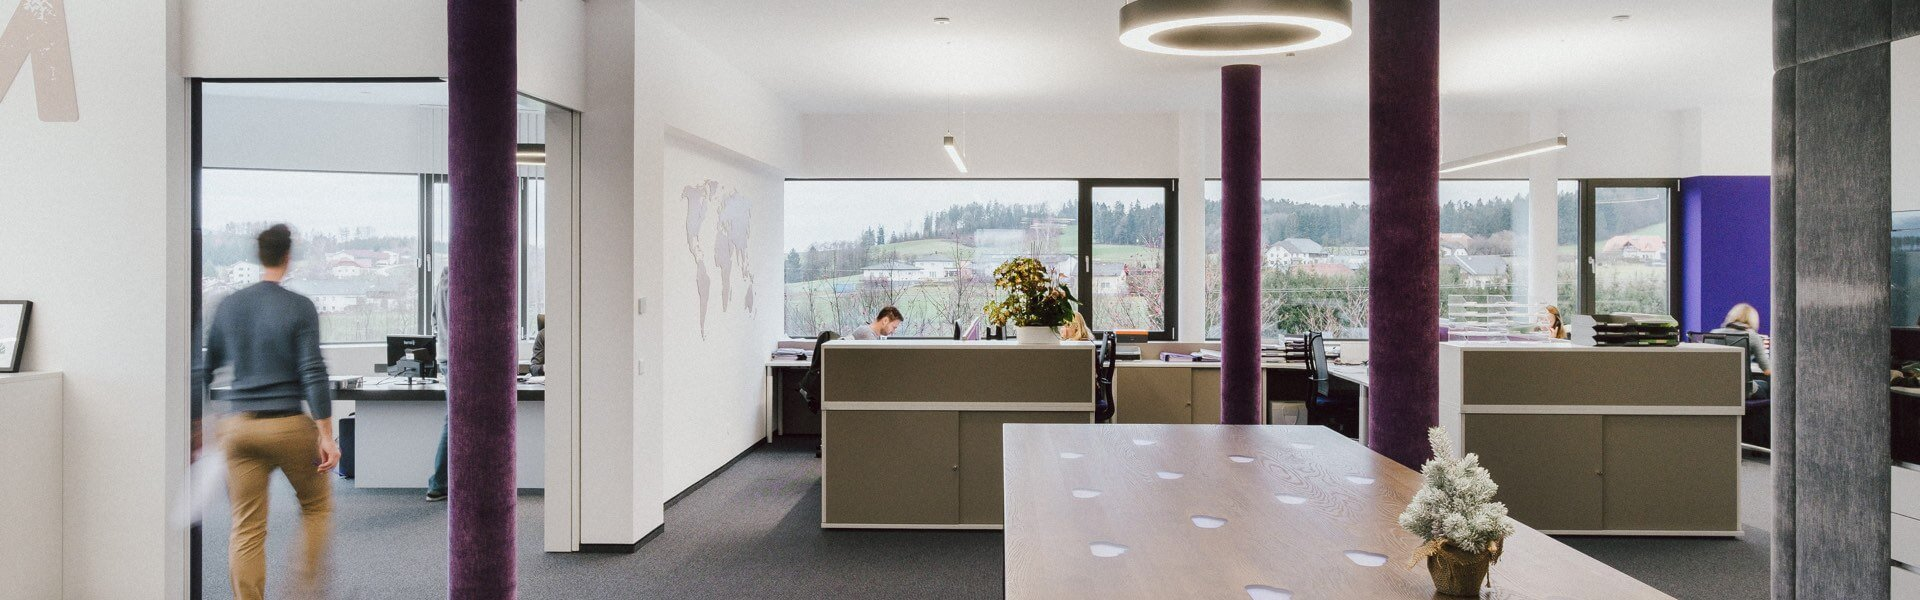 Brightly lit office space